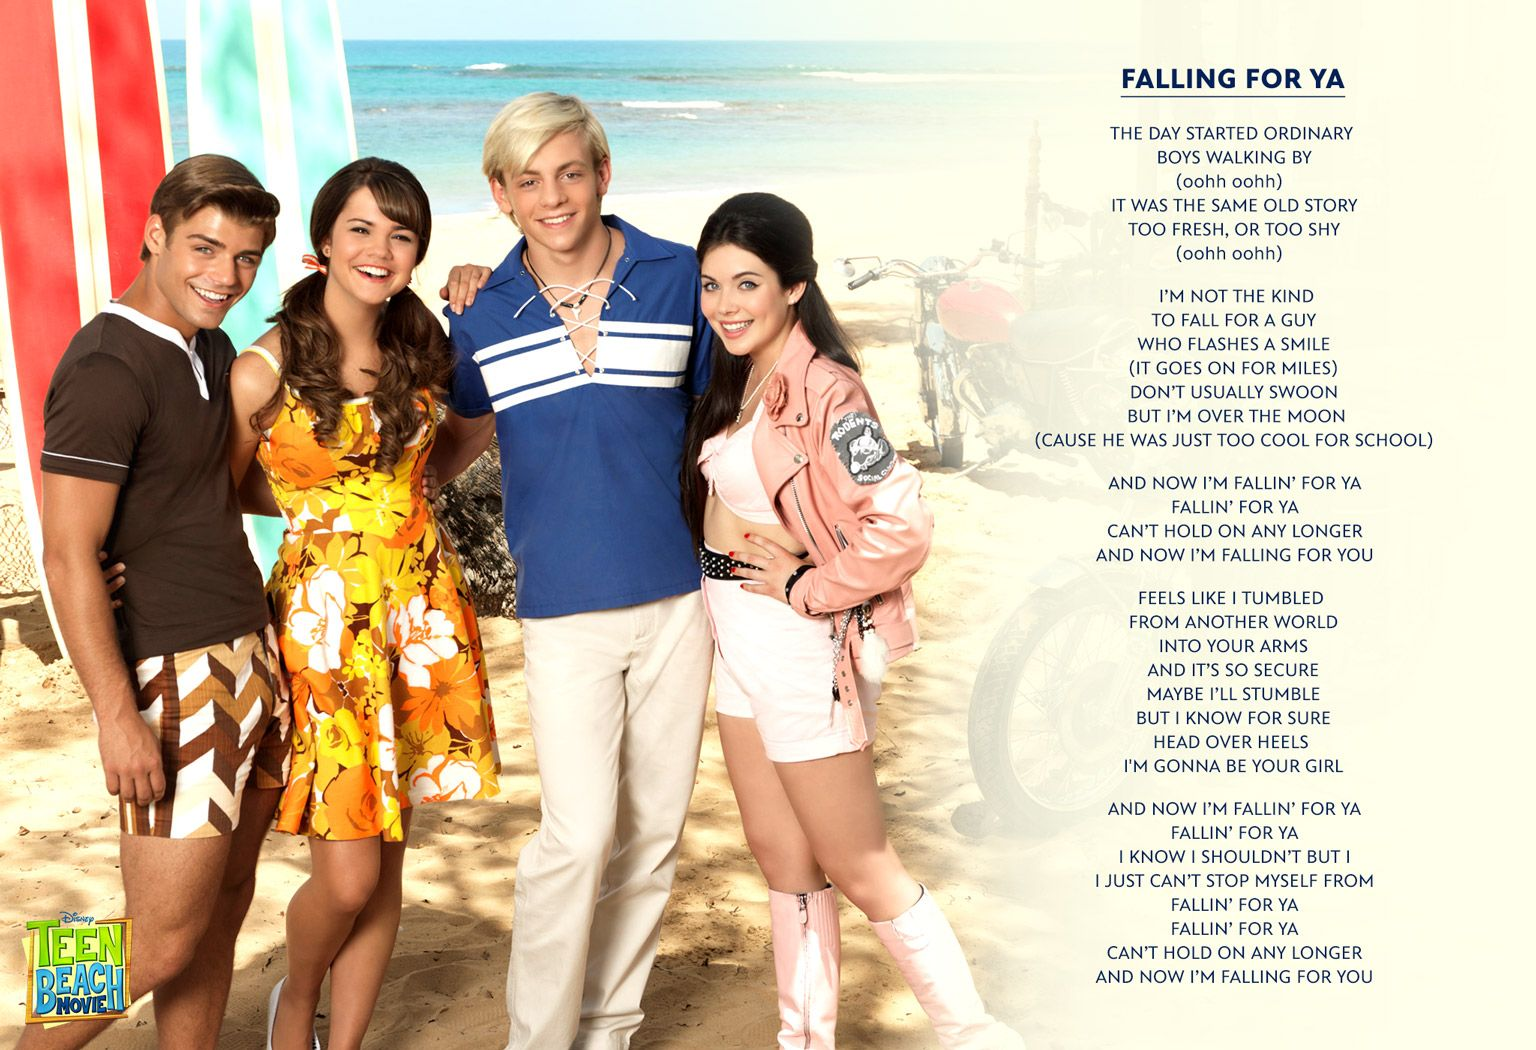 Falling For Ya - Teen Beach Movie - Music Video - Lyrics